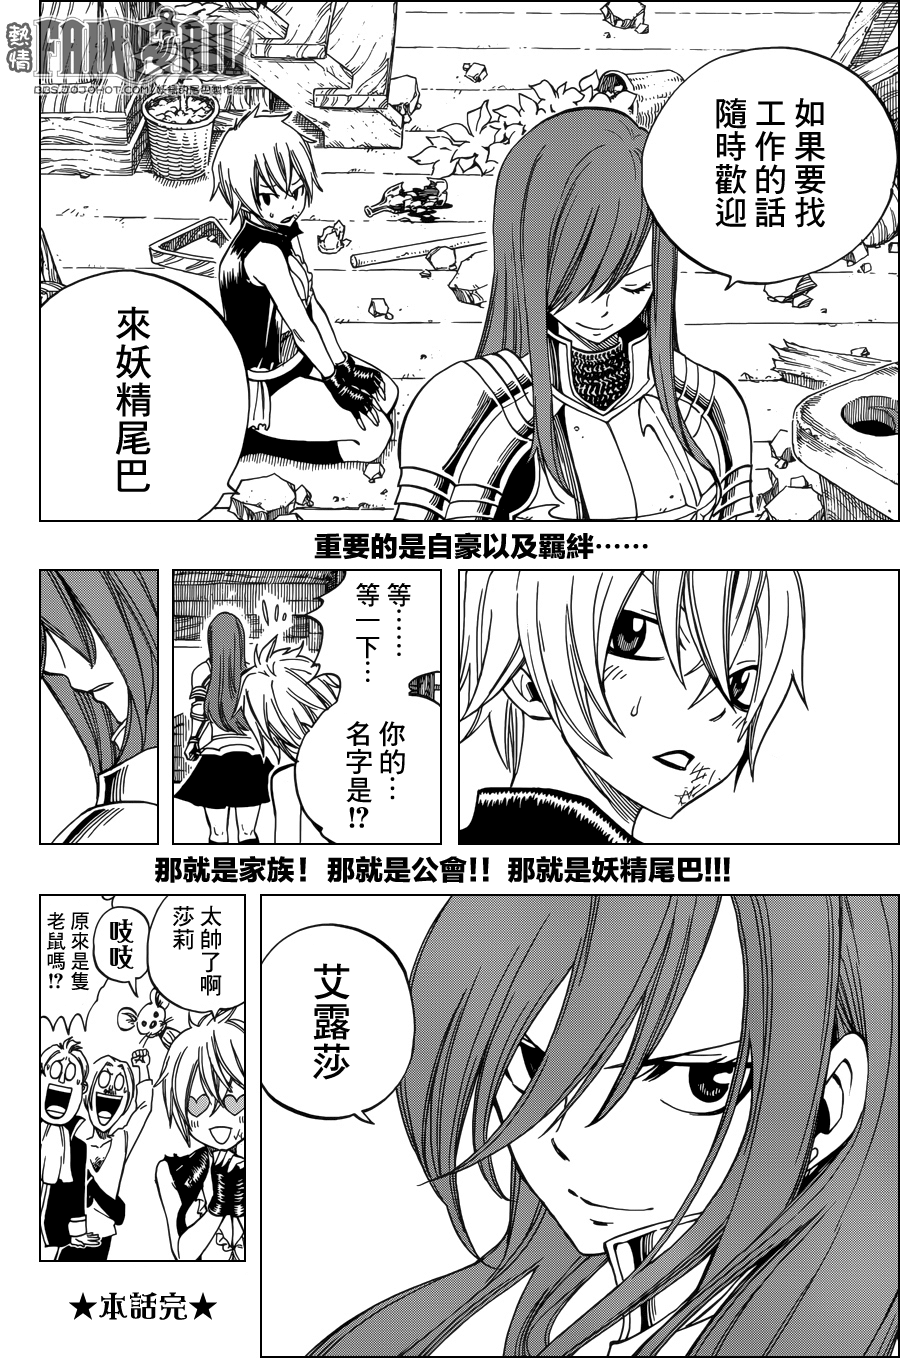 fairytail_9_20